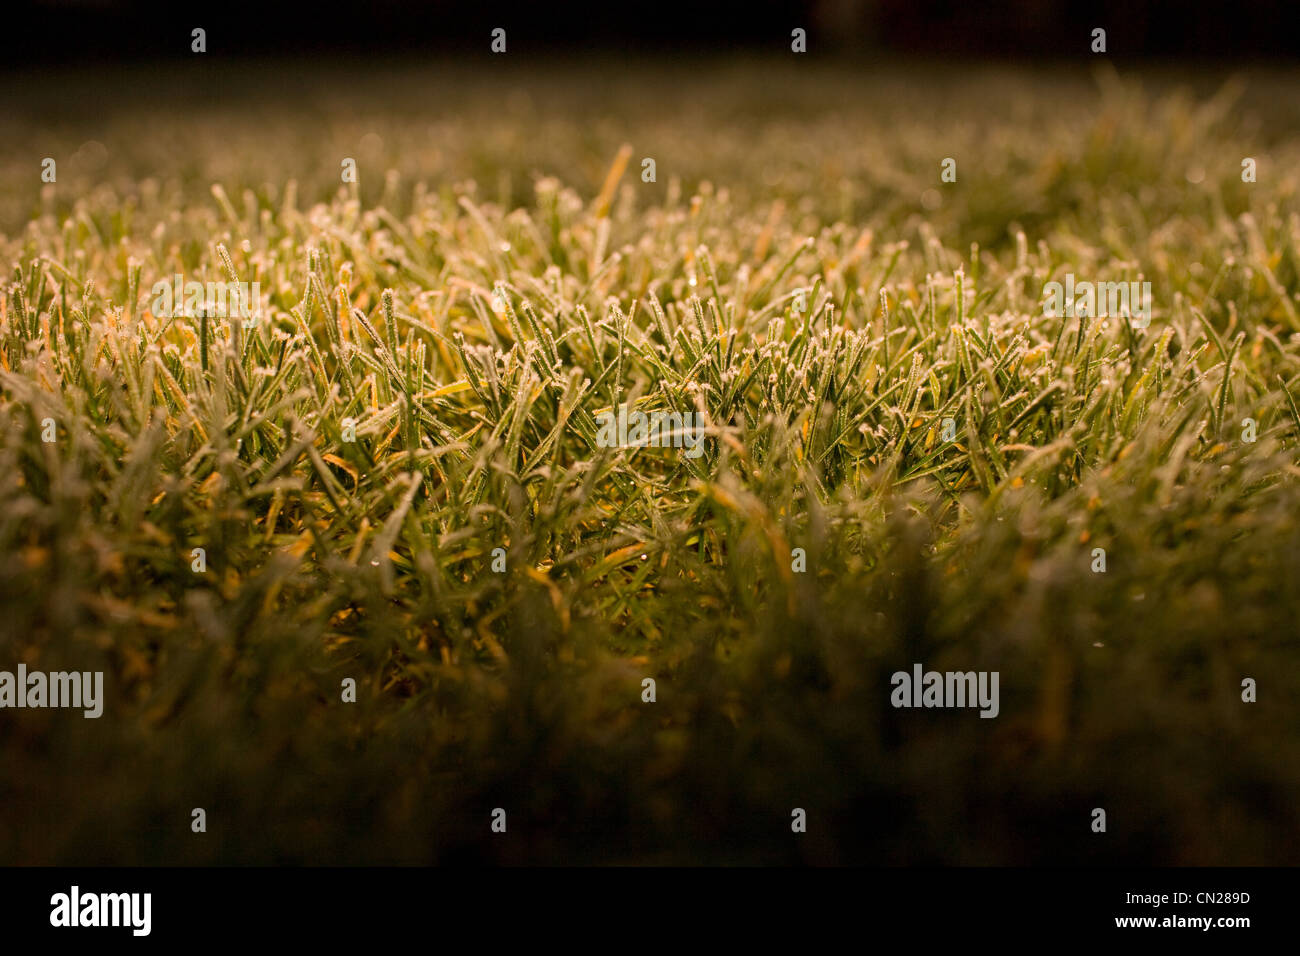 Frost on grass, close up Stock Photo